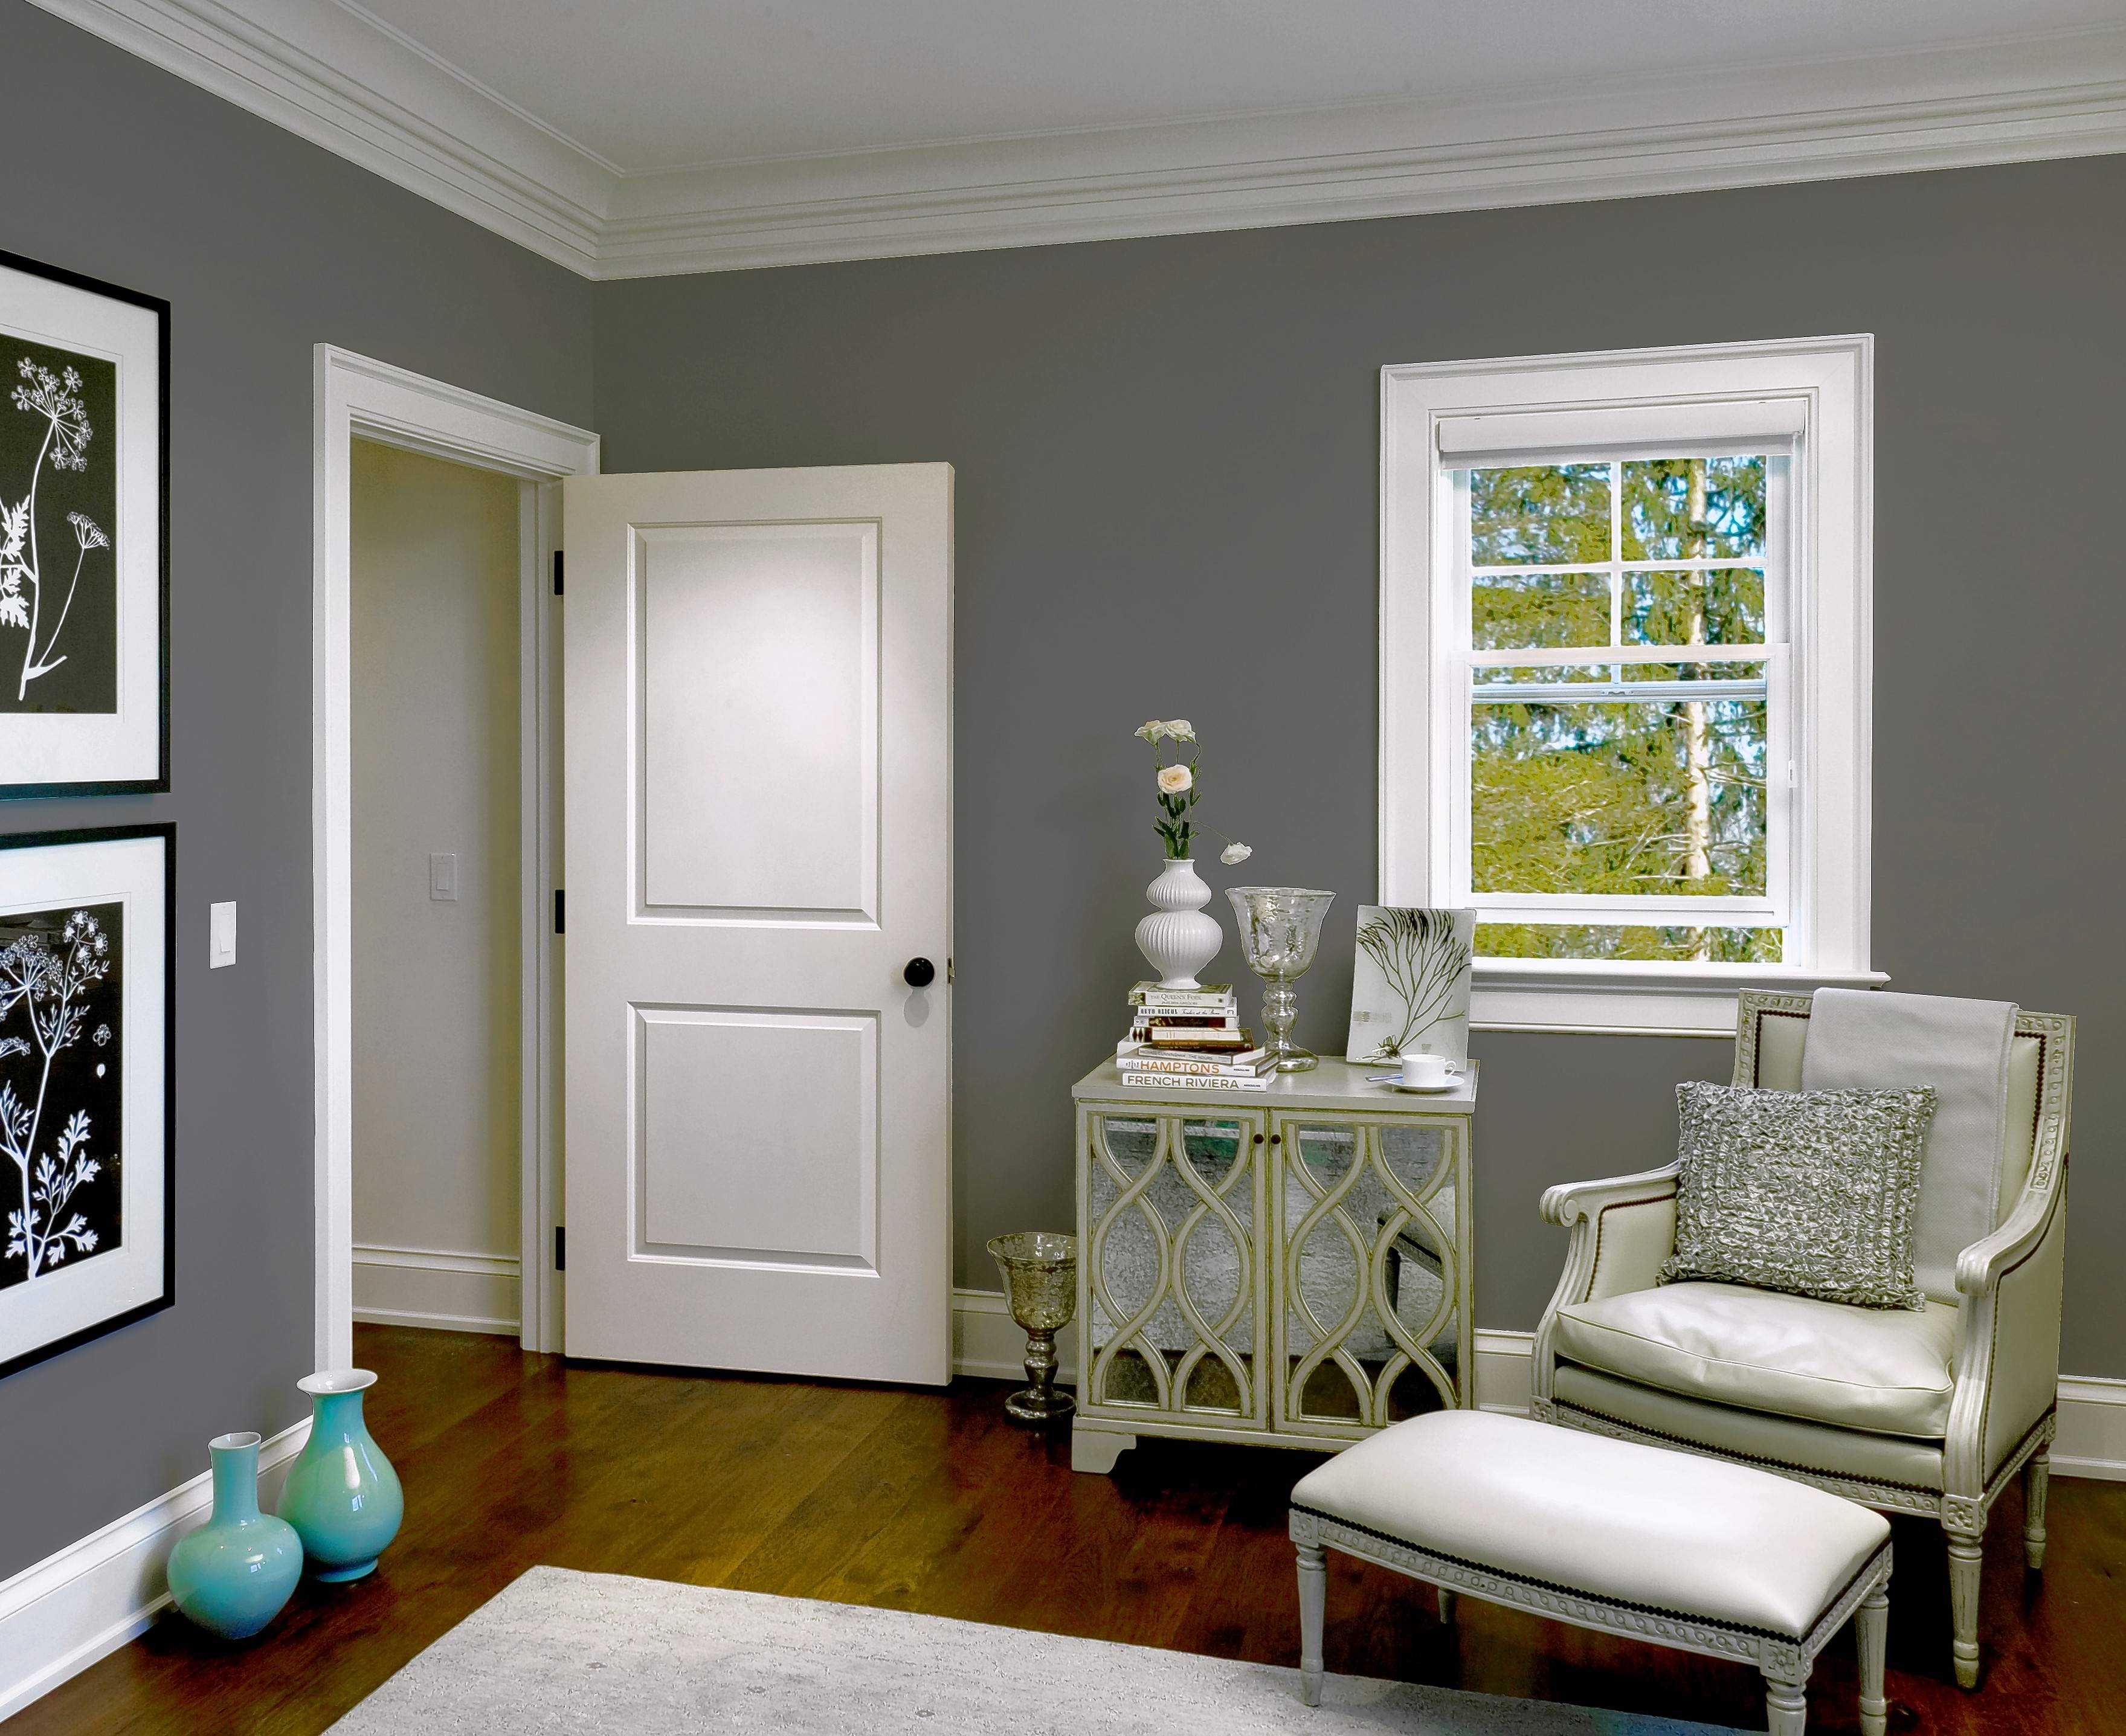 Two-panel doors are a popular selection for their simplicity and clean lines.